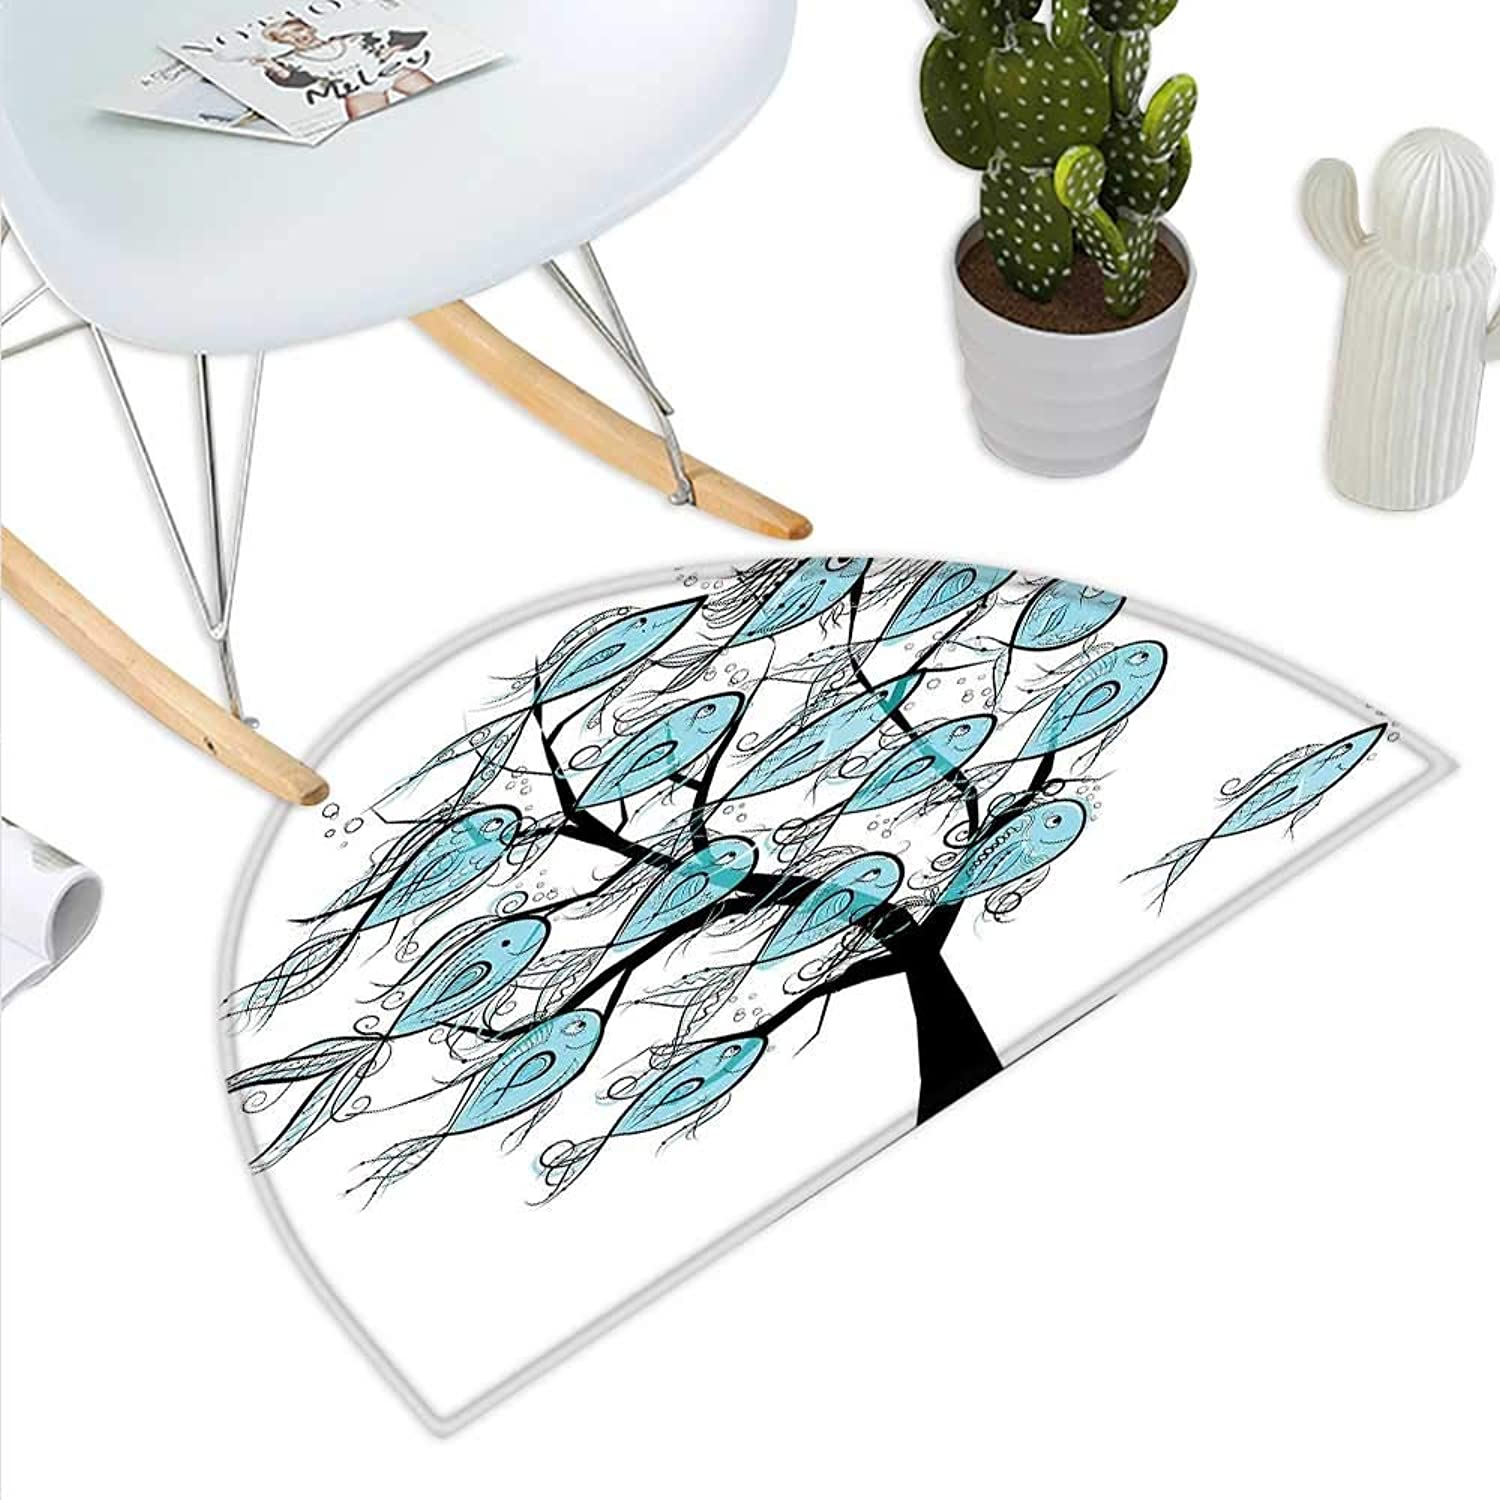 Fish Semicircle Doormat Life of Tree of Funny Fish Figures on The Branches with Different Emojis Print Halfmoon doormats H 35.4  xD 53.1  bluee and Black